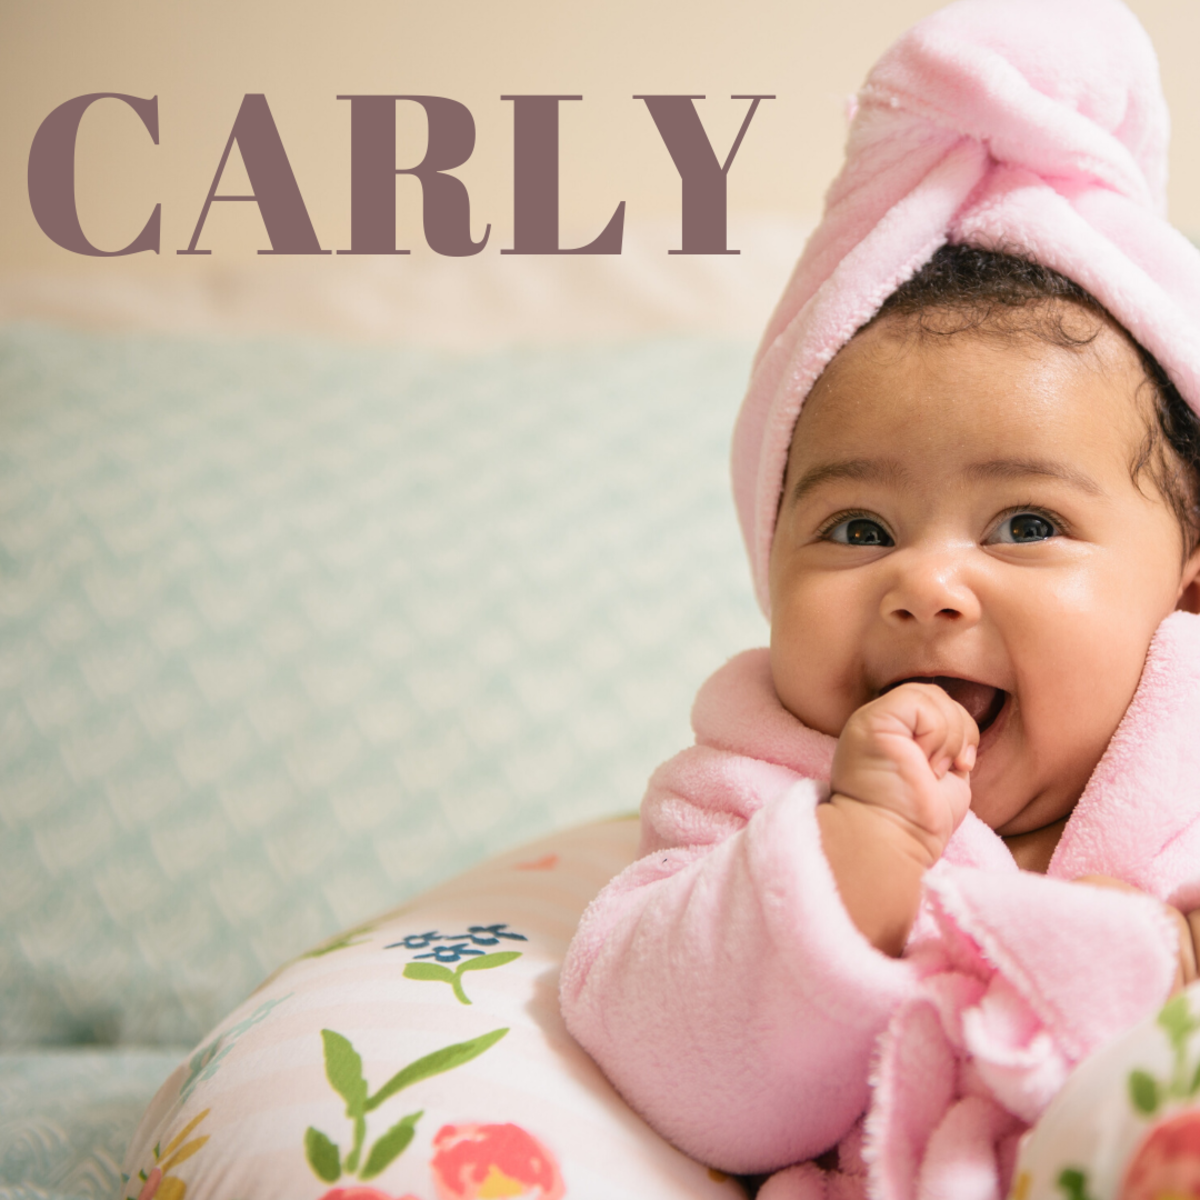 Baby Carly